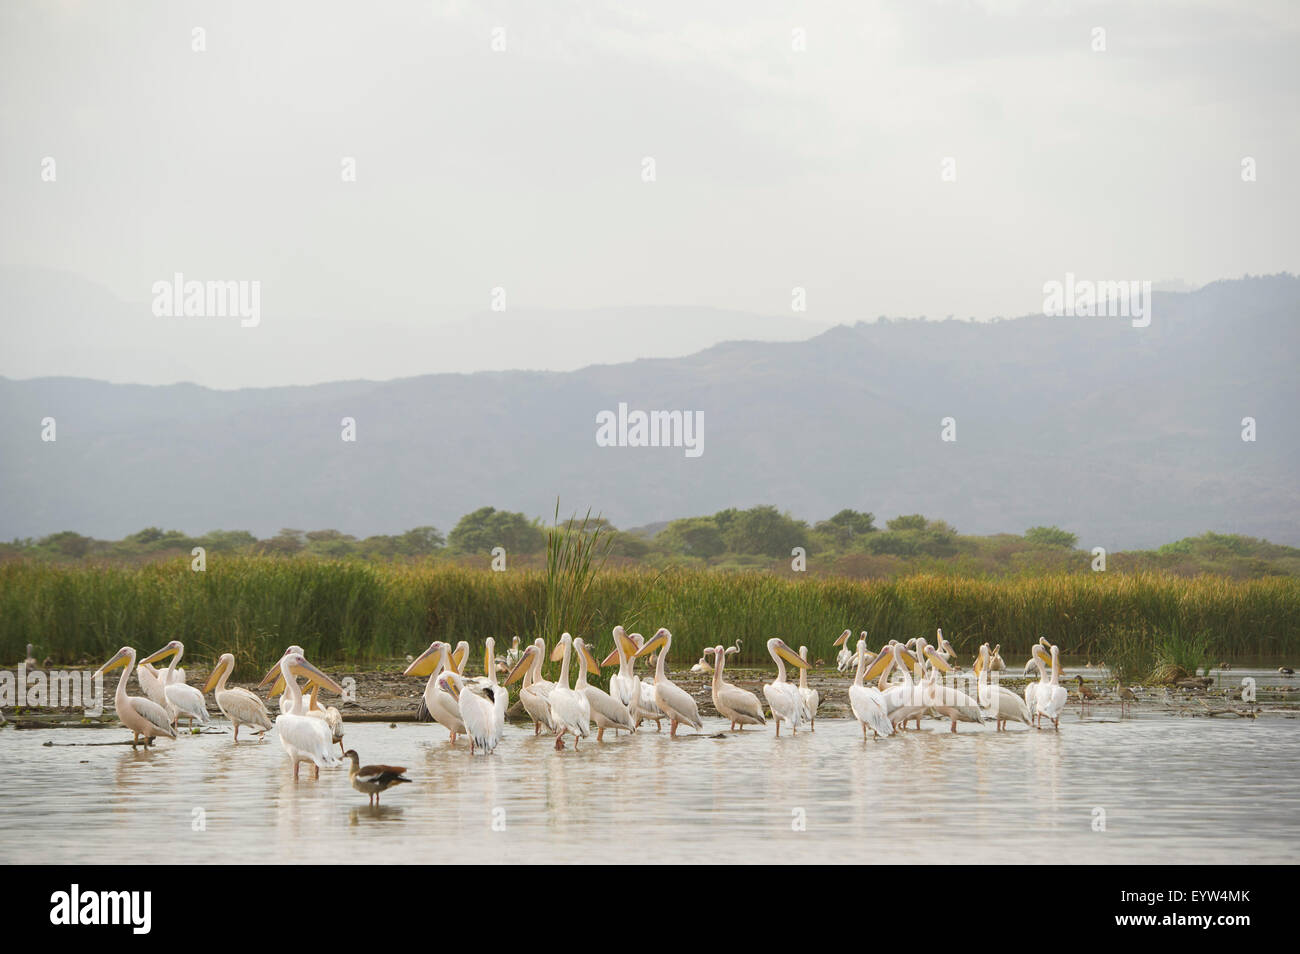 Great white pelicans (Pelecanus onocrotalus) , Lake Chamo, Nechisar National Park, Ethiopia Stock Photo